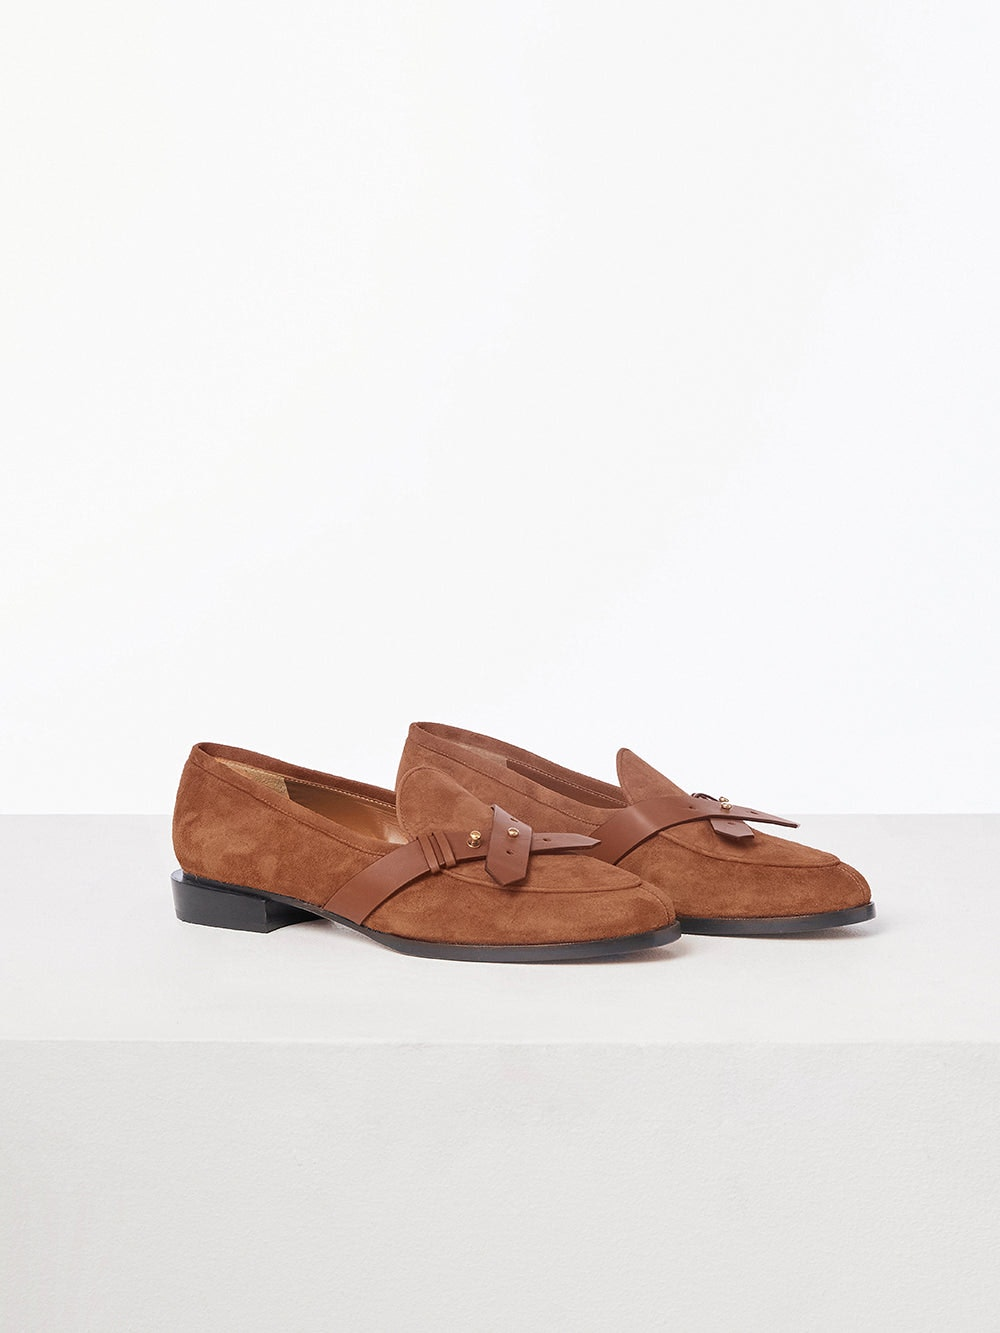 shoe front view